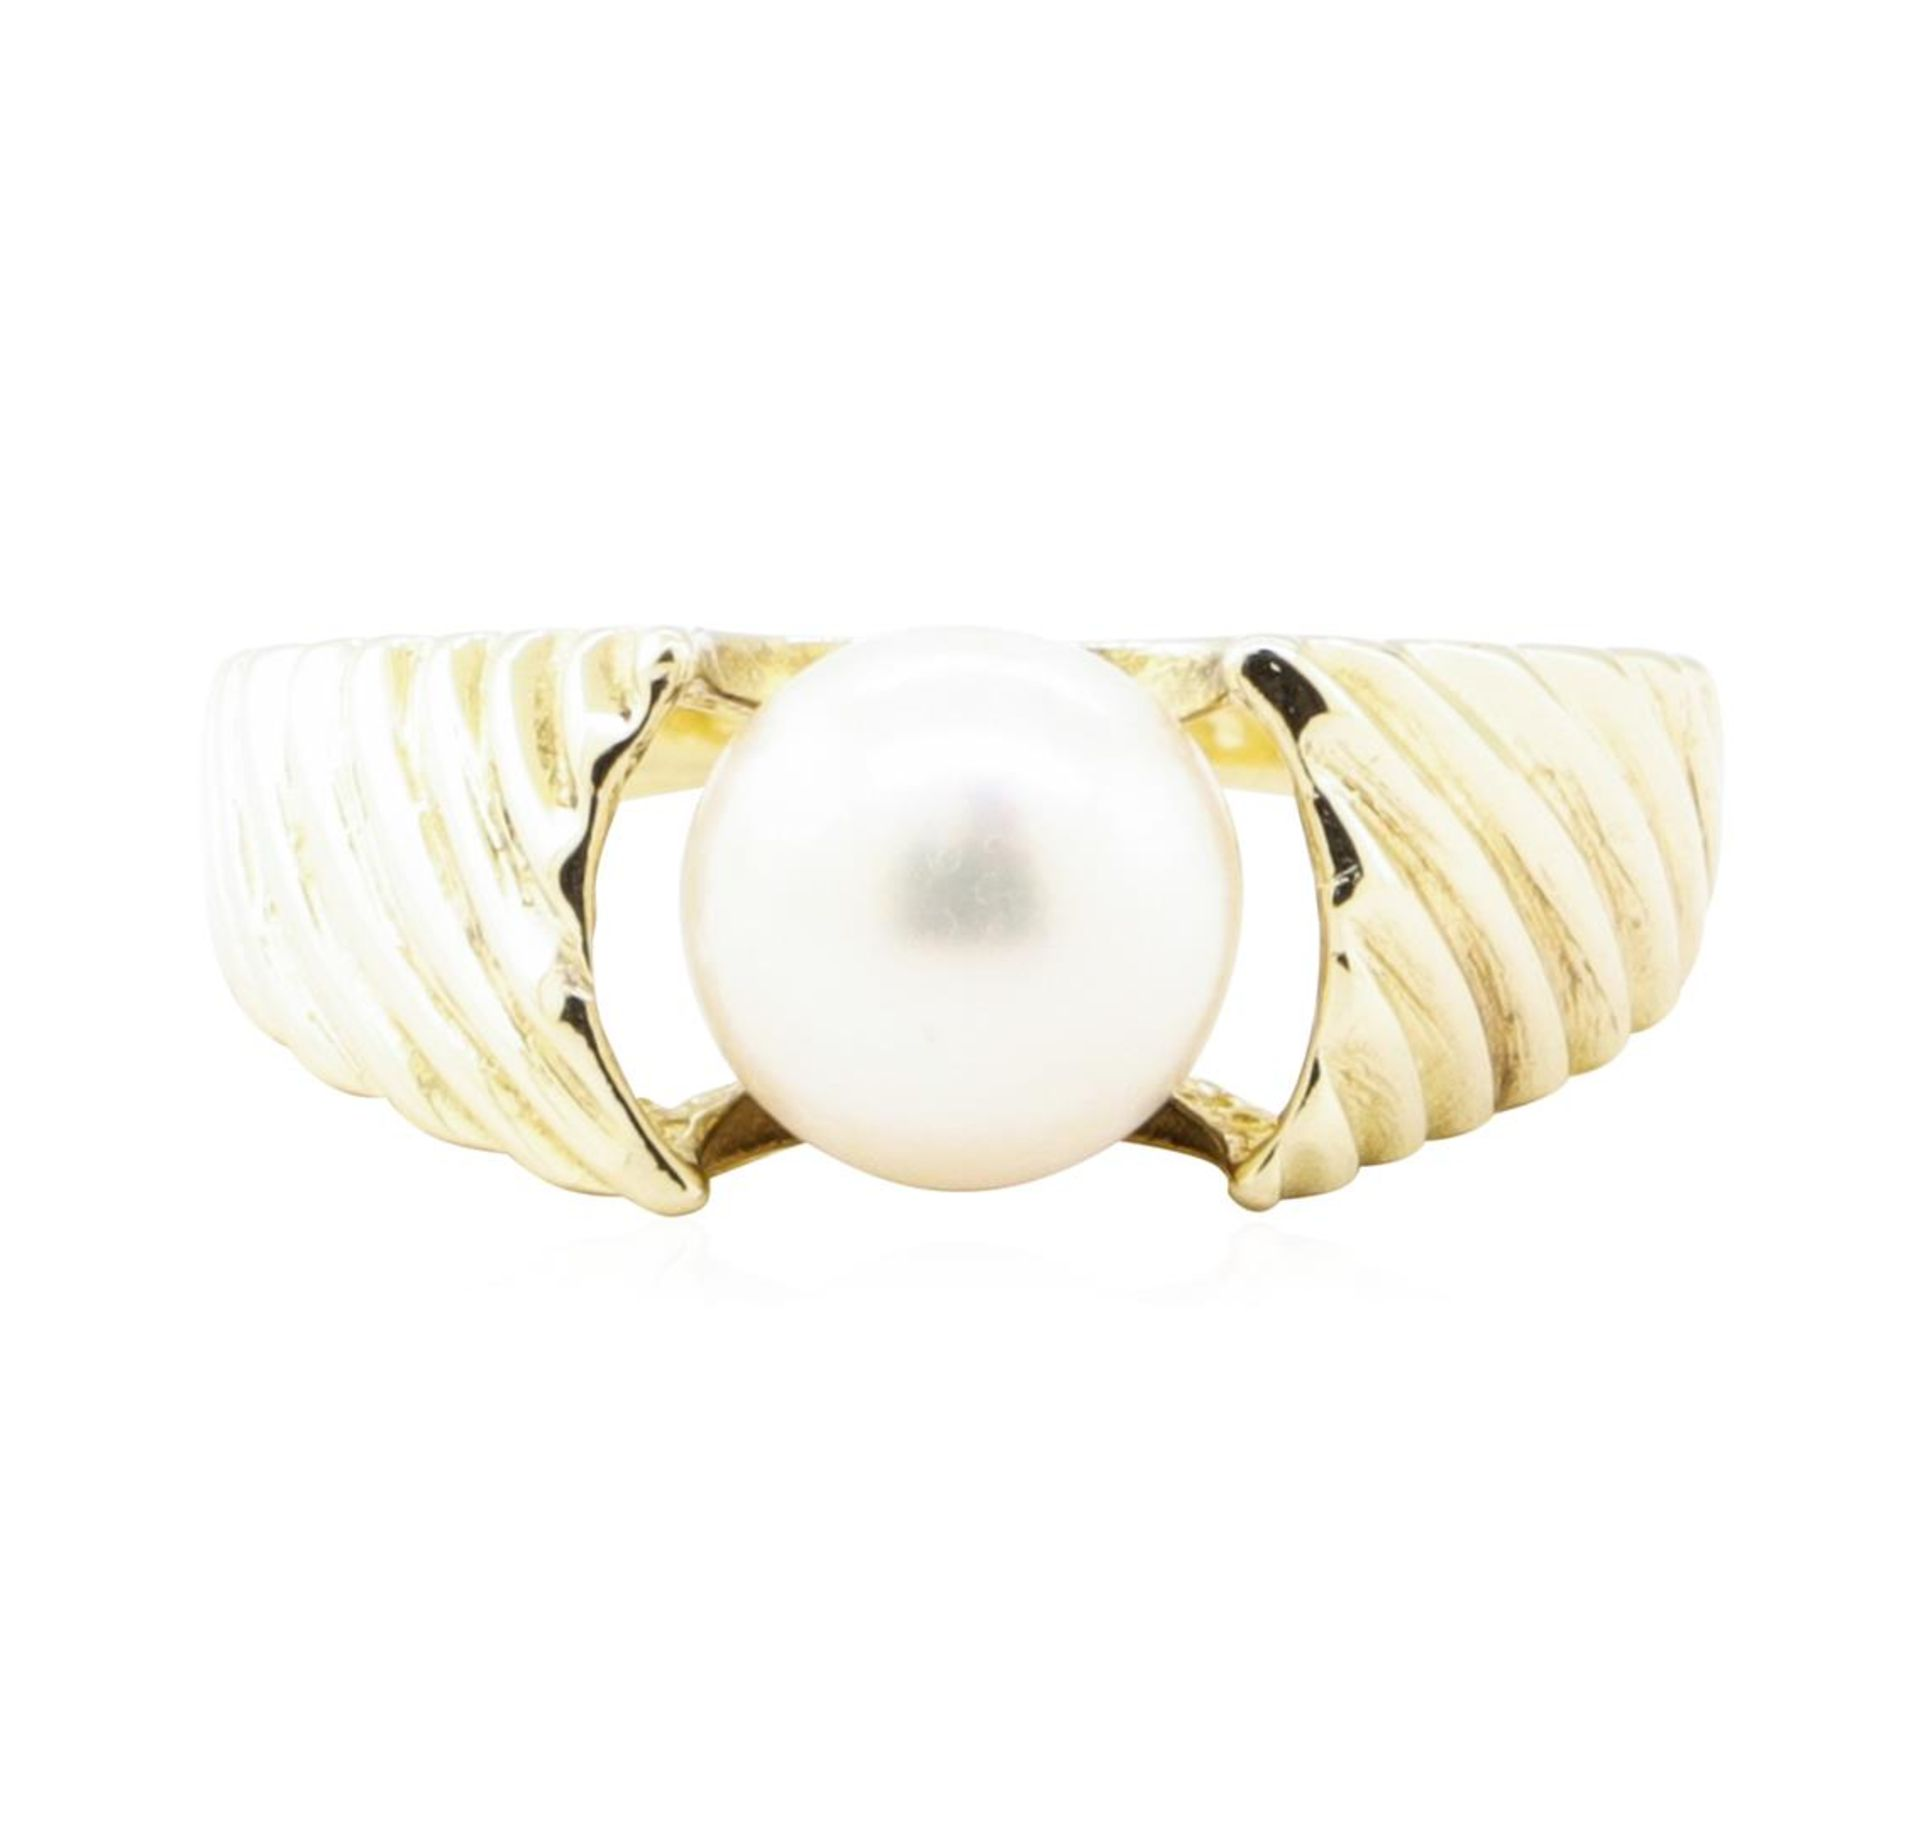 7mm Cultured Pearl Ring - 14KT Yellow Gold - Image 2 of 4